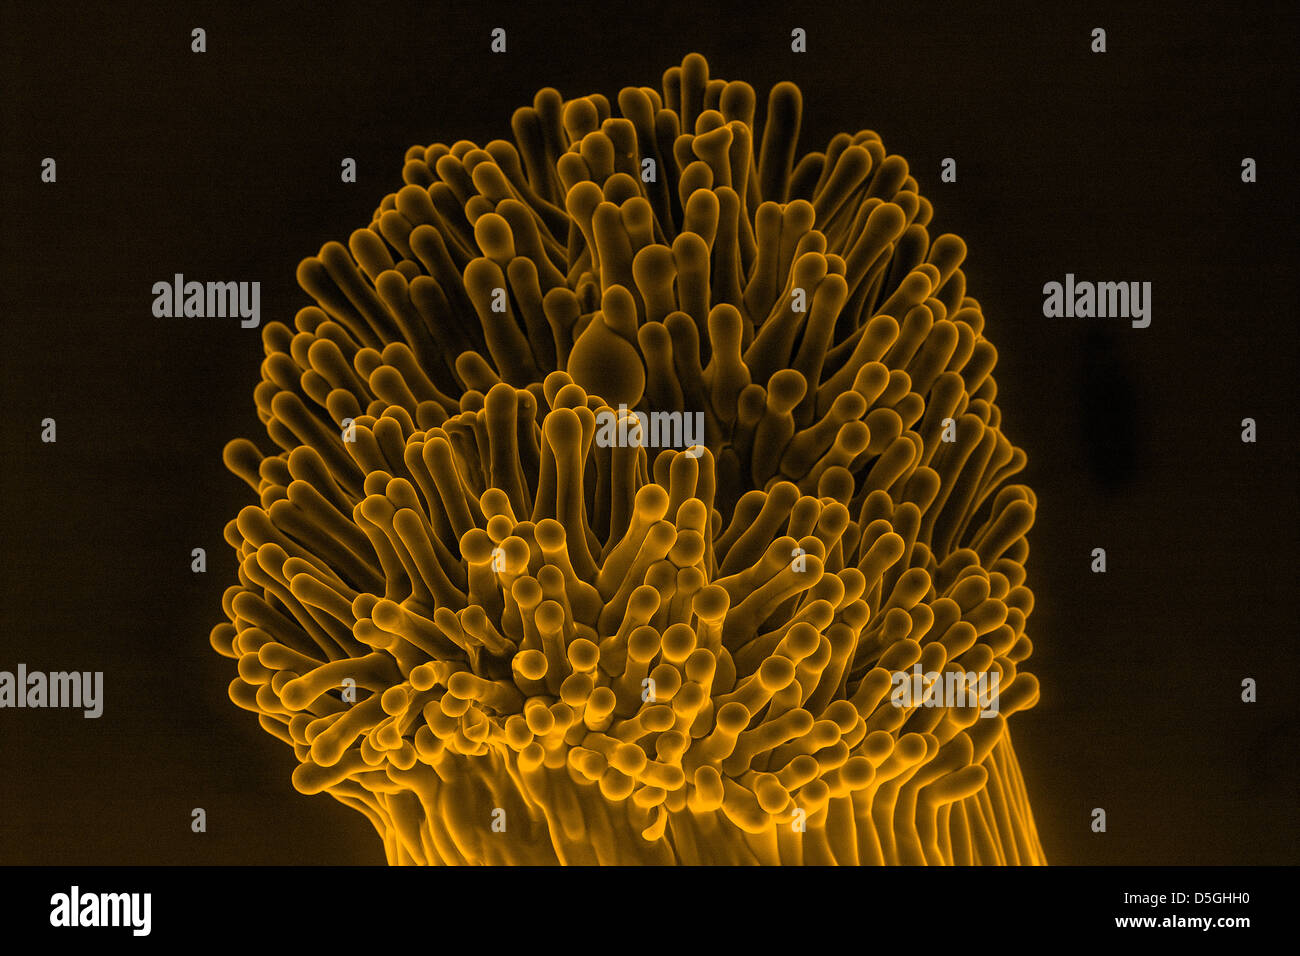 Stigma of African violet (saintpaulia) flower, scanning electron microscopy - Stock Image